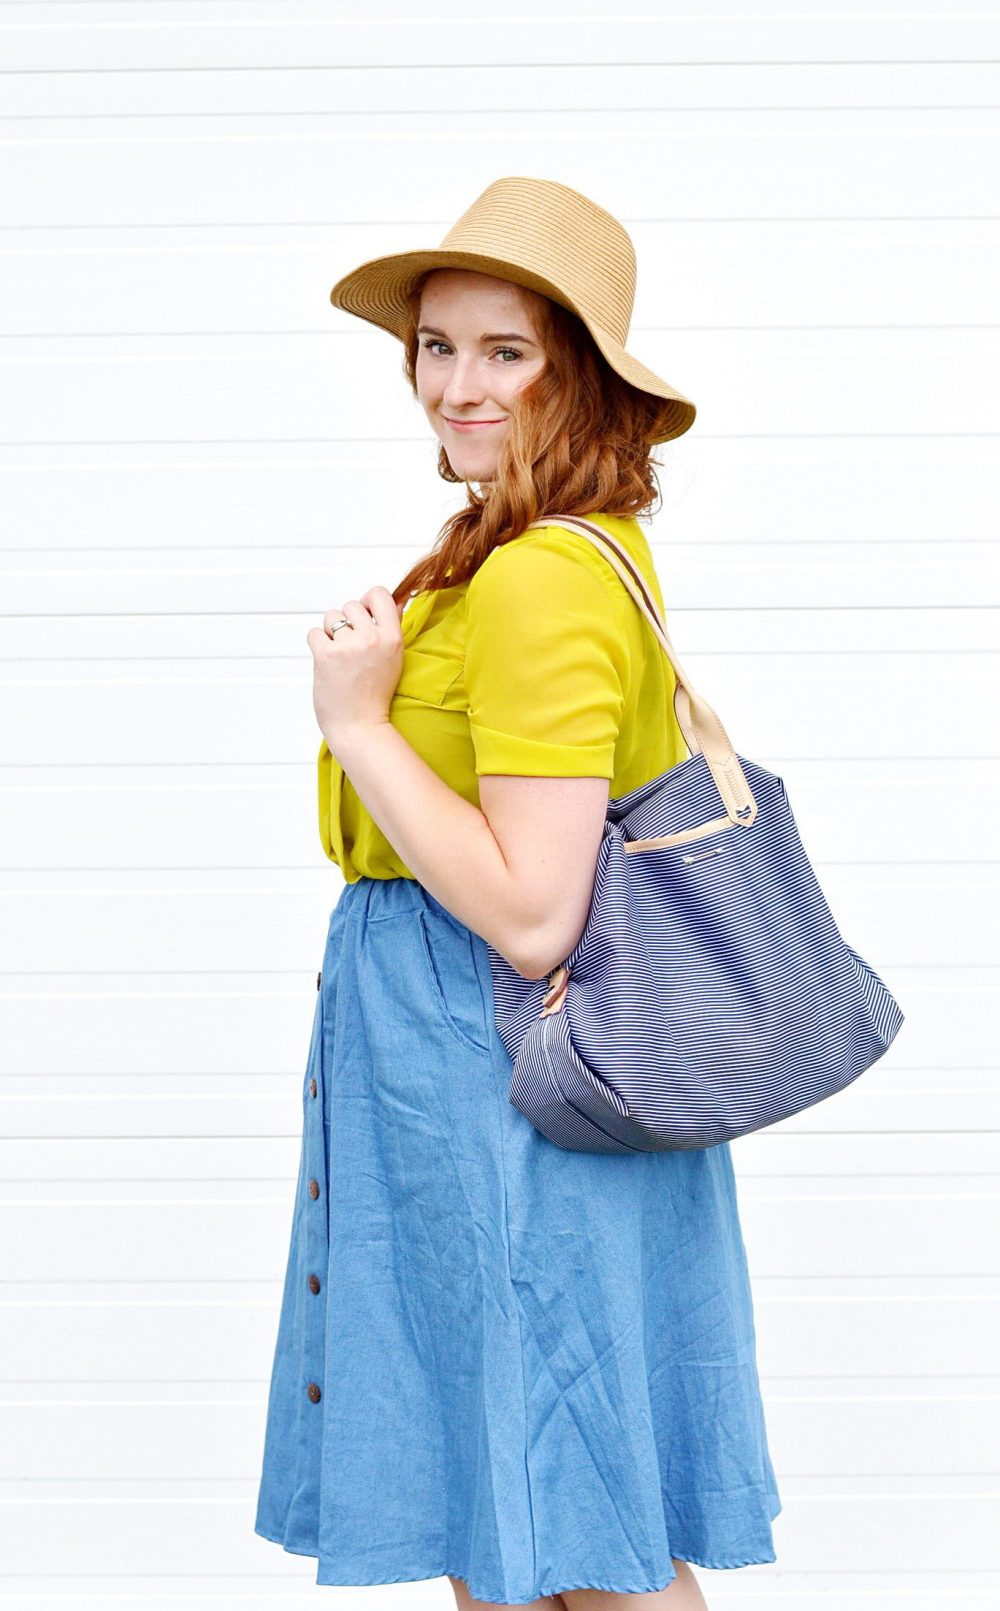 Denim Skirt Style, How To Dress After You Have A Baby